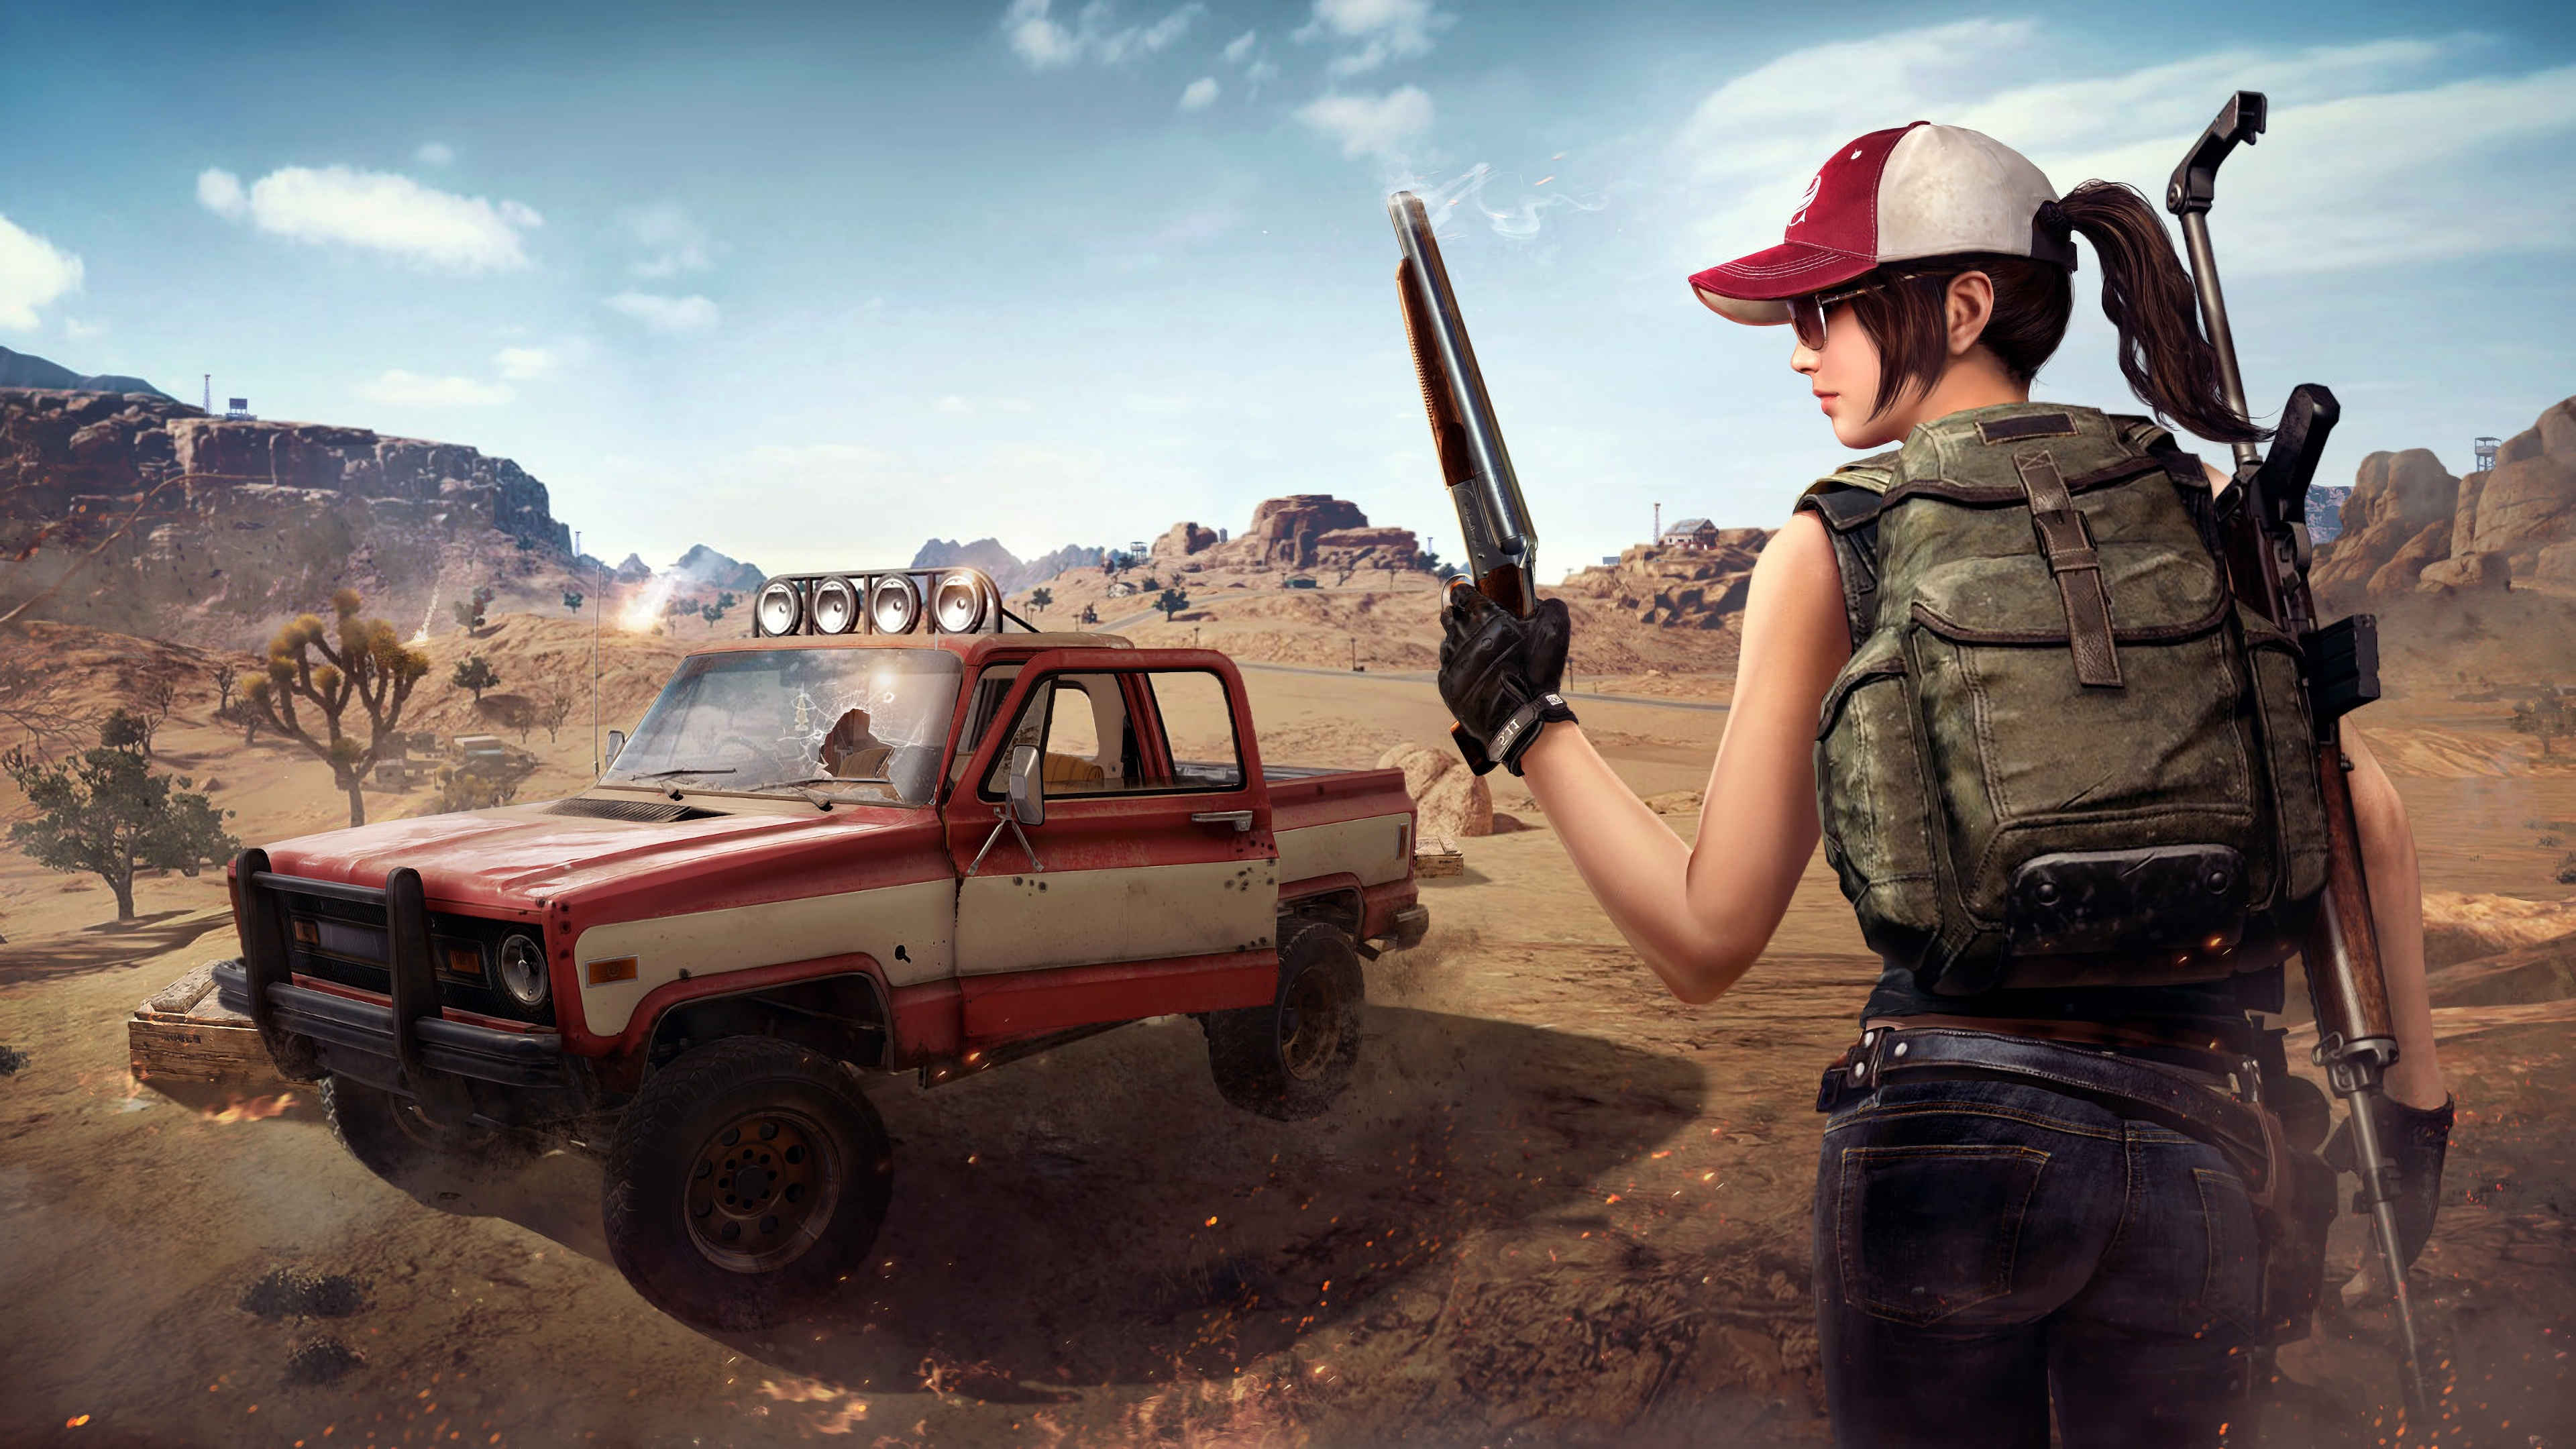 2048x1152 Pubg Bike Rider 4k 2048x1152 Resolution Hd 4k: Pubg Girl 4k, HD Games, 4k Wallpapers, Images, Backgrounds